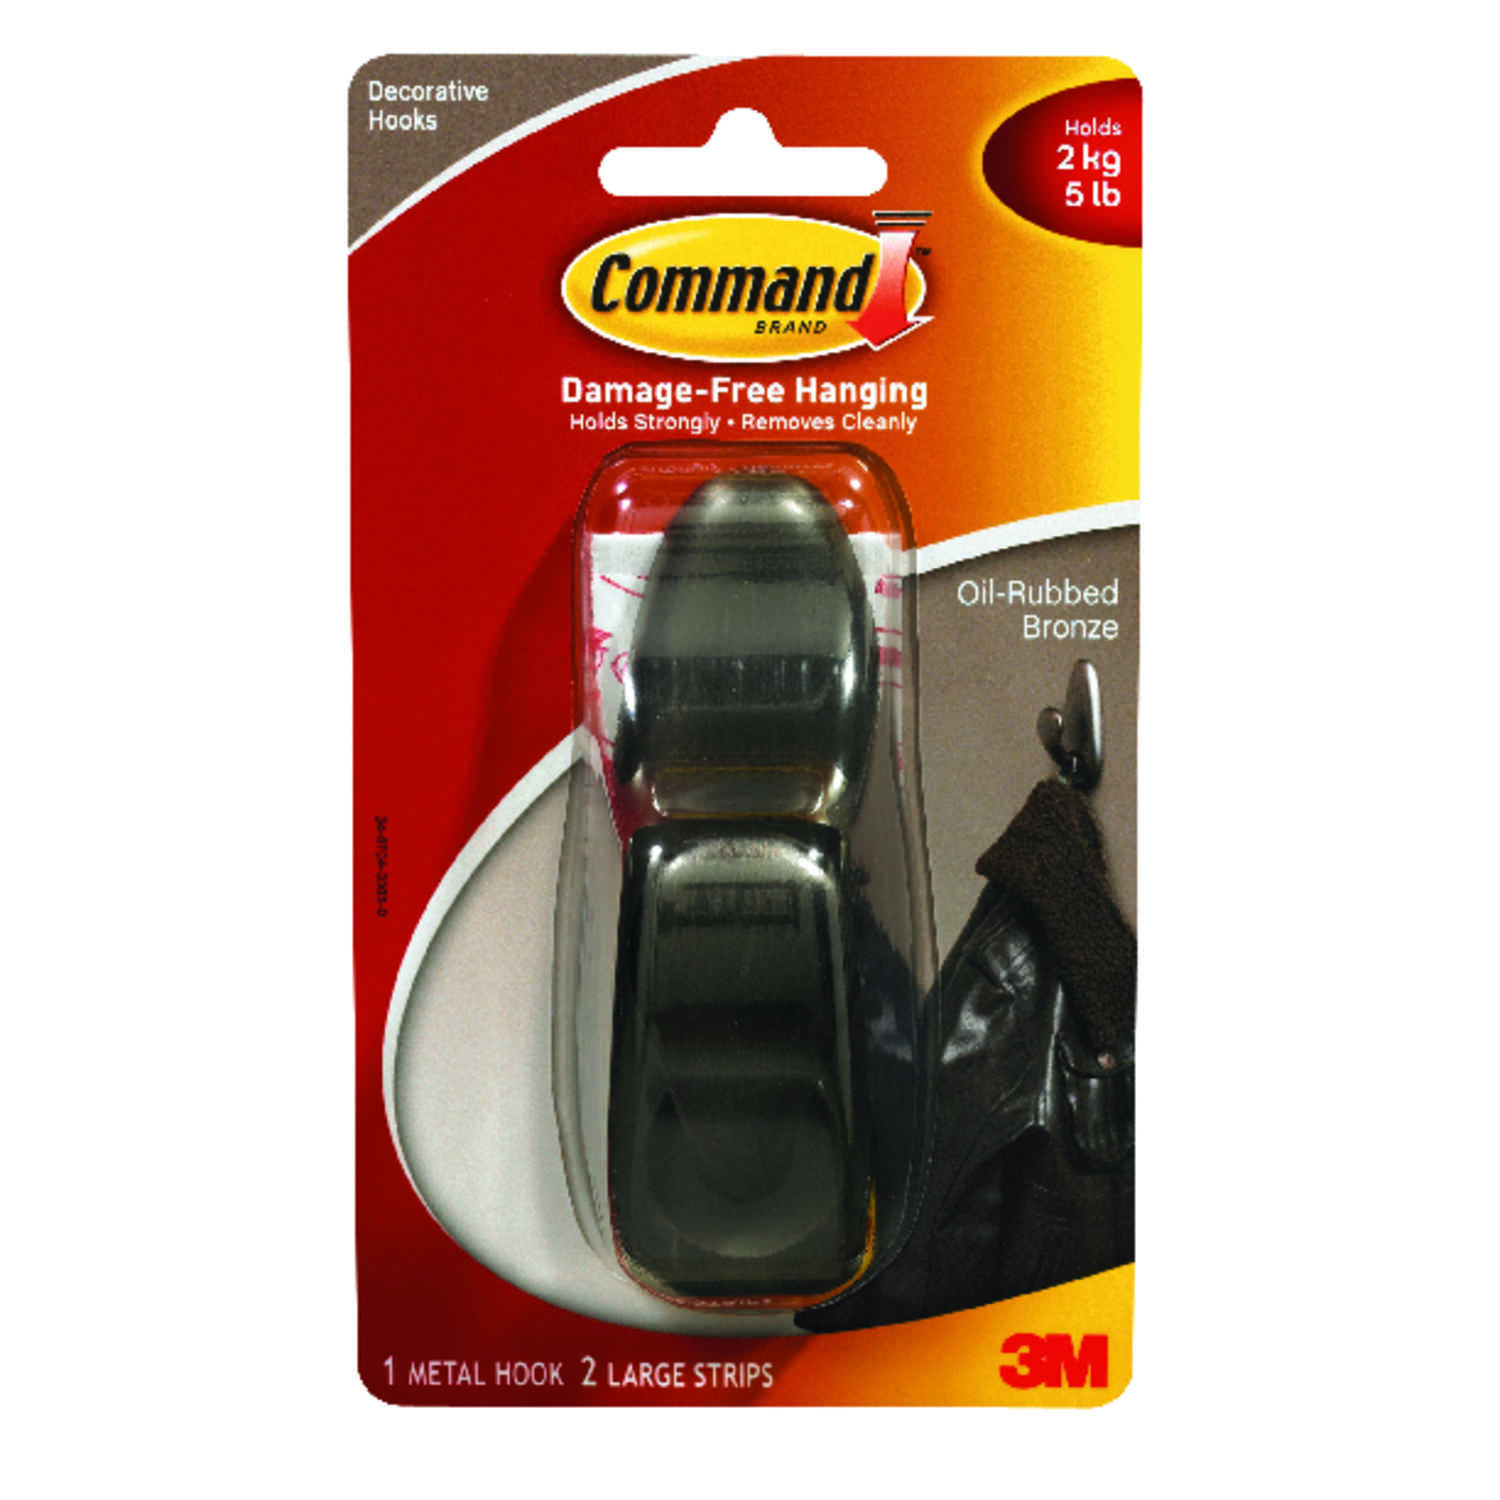 3M  Command  Oil Rubbed Bronze  4-1/8 in. L Large  Metal  Forever Classic  5 lb. 1 pk Coat/Hat Hook